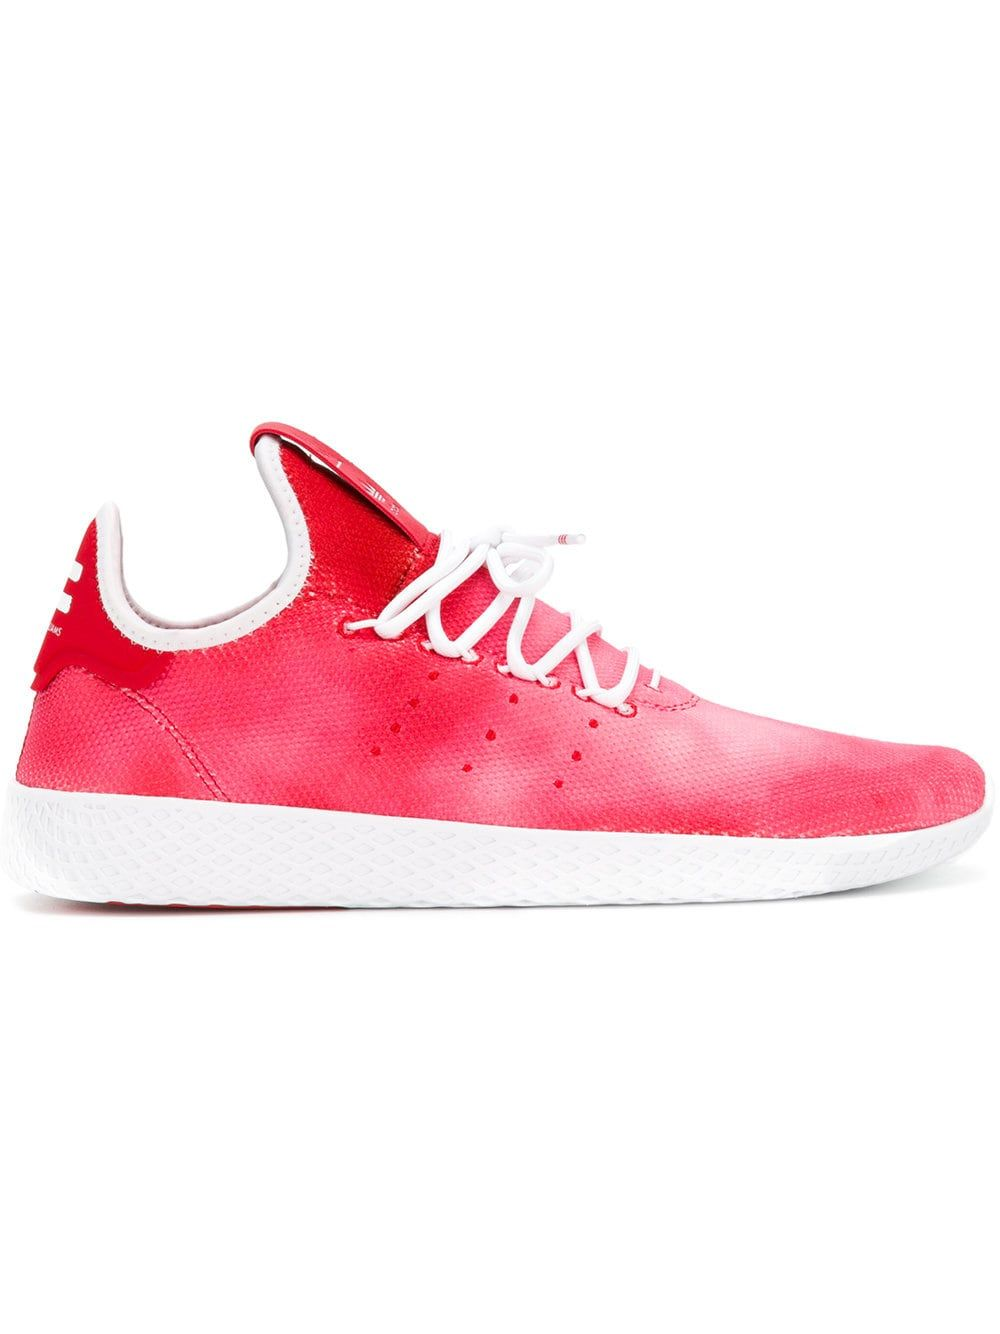 Adidas Originals X Pharrell Williams Shoes for Men | ModeSens